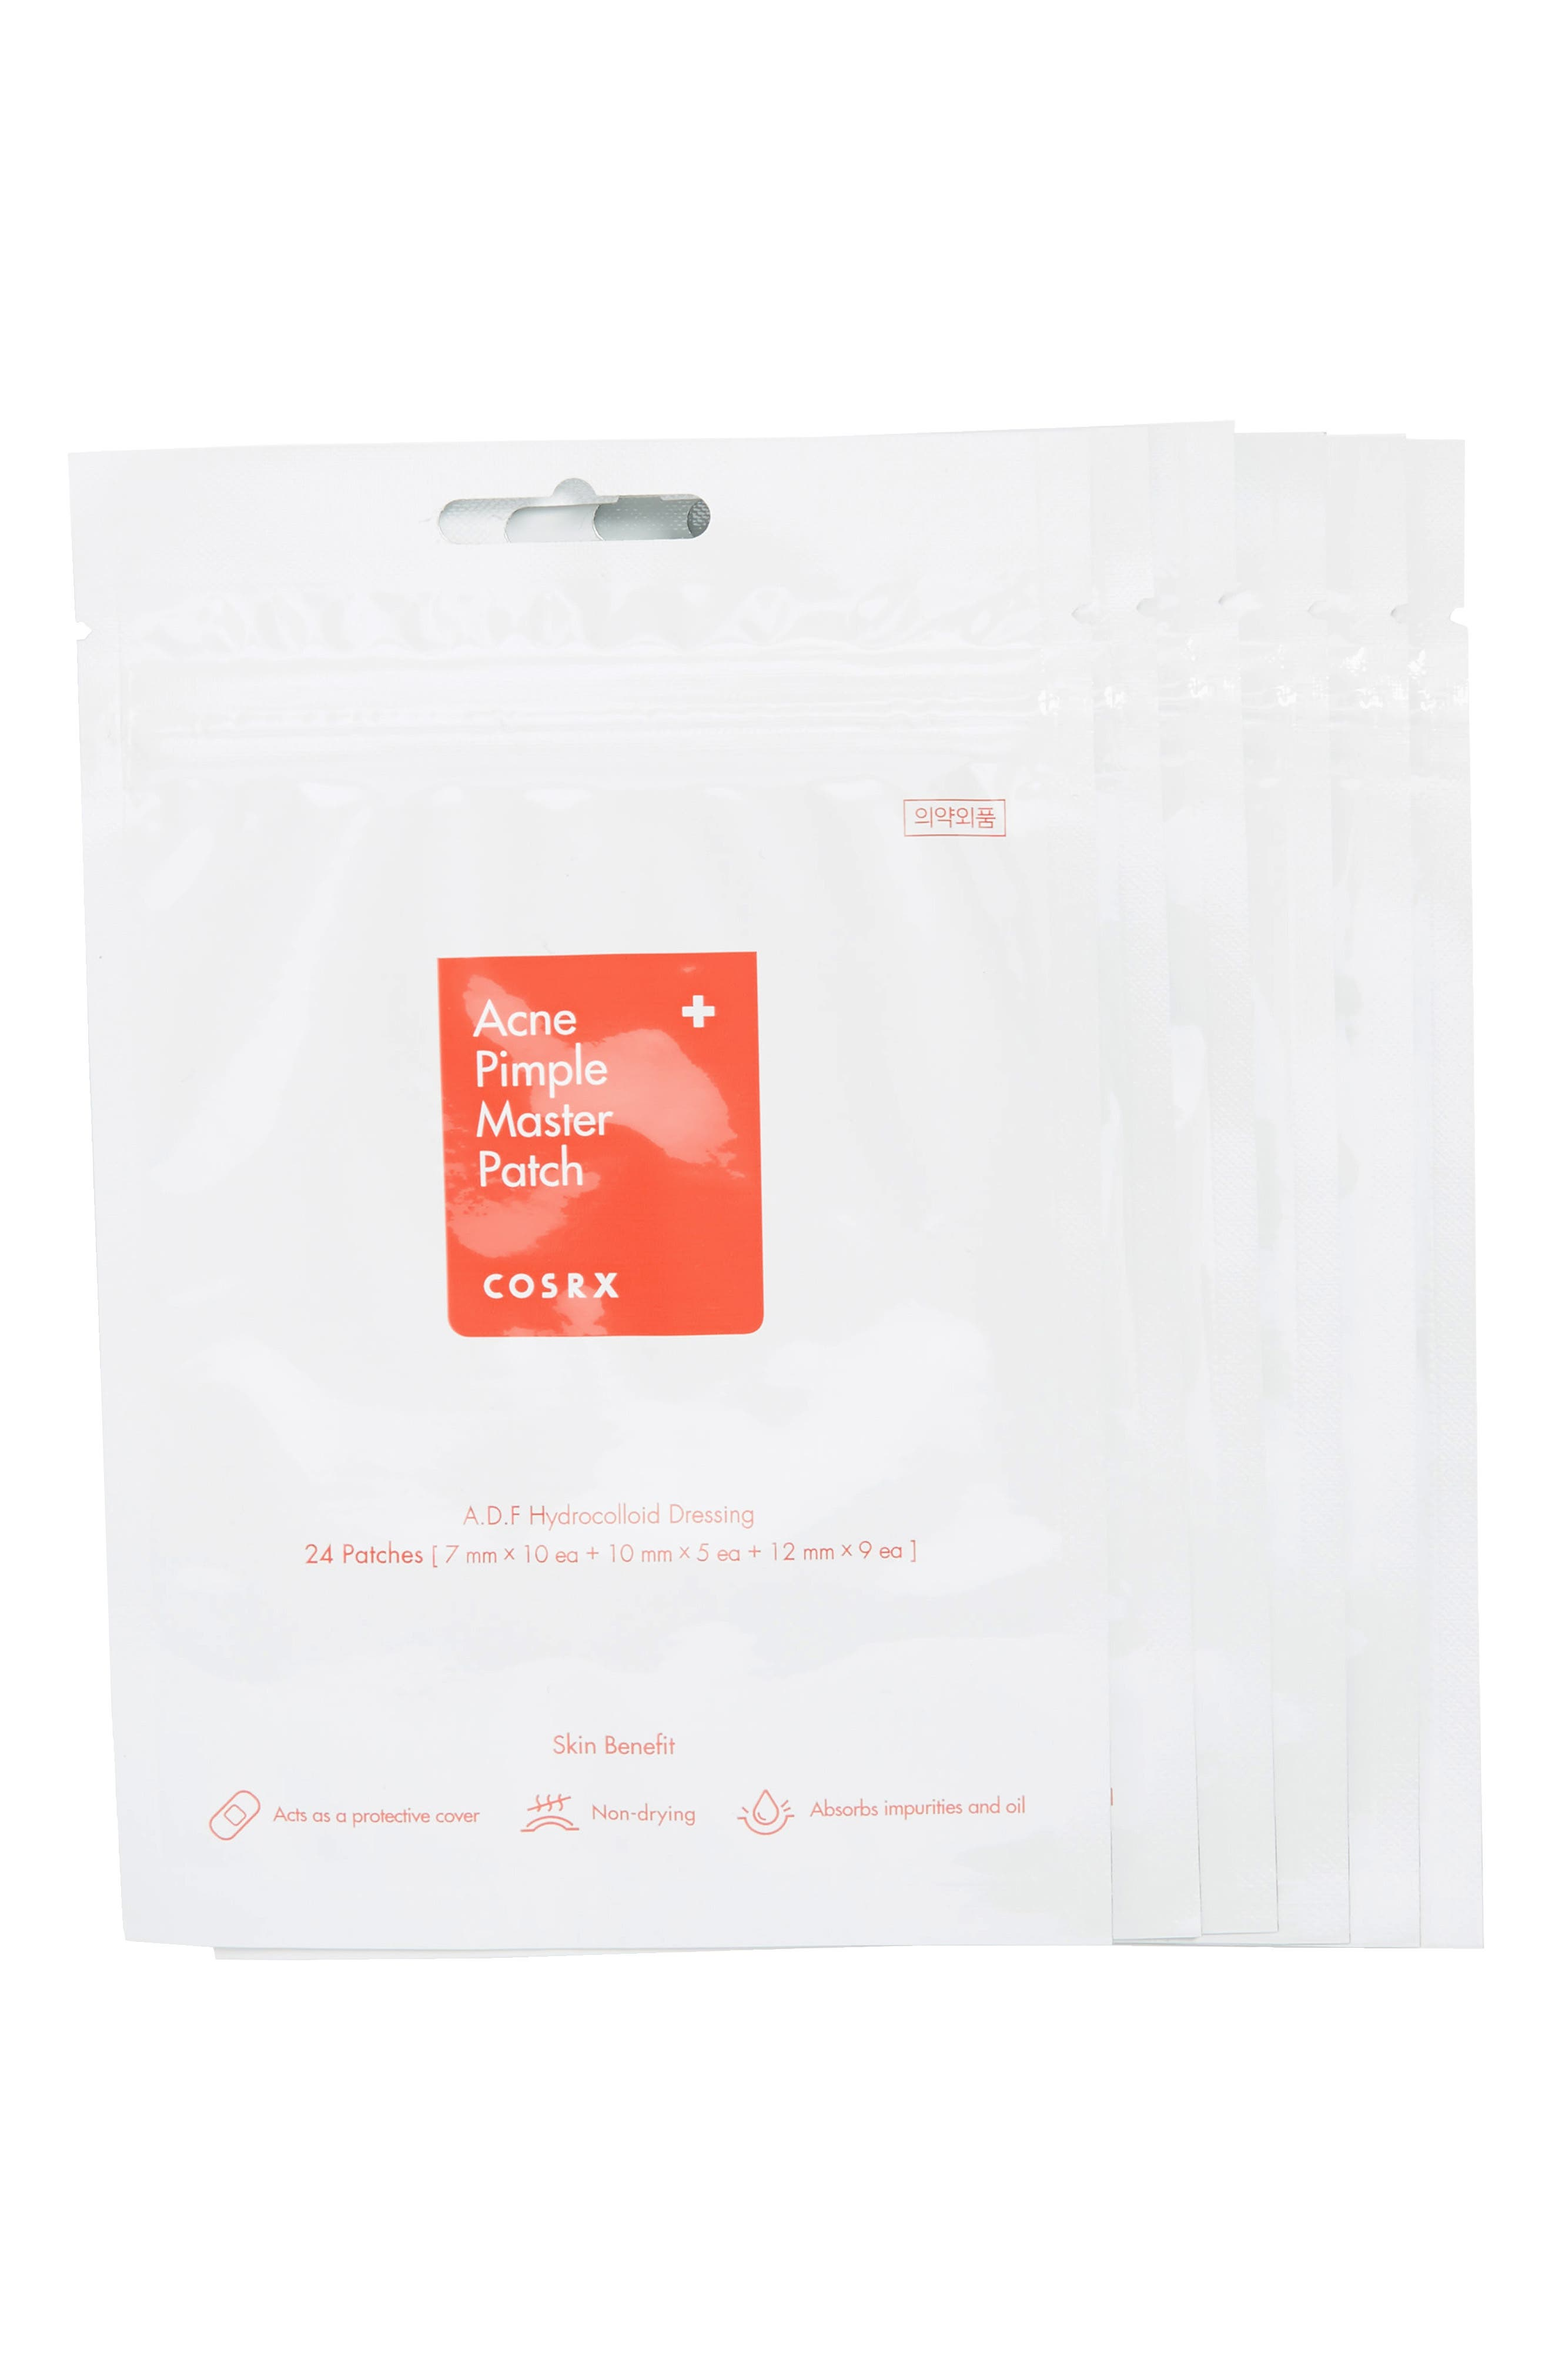 COSRX 6-Pack Acne Pimple Master Patch in Clear